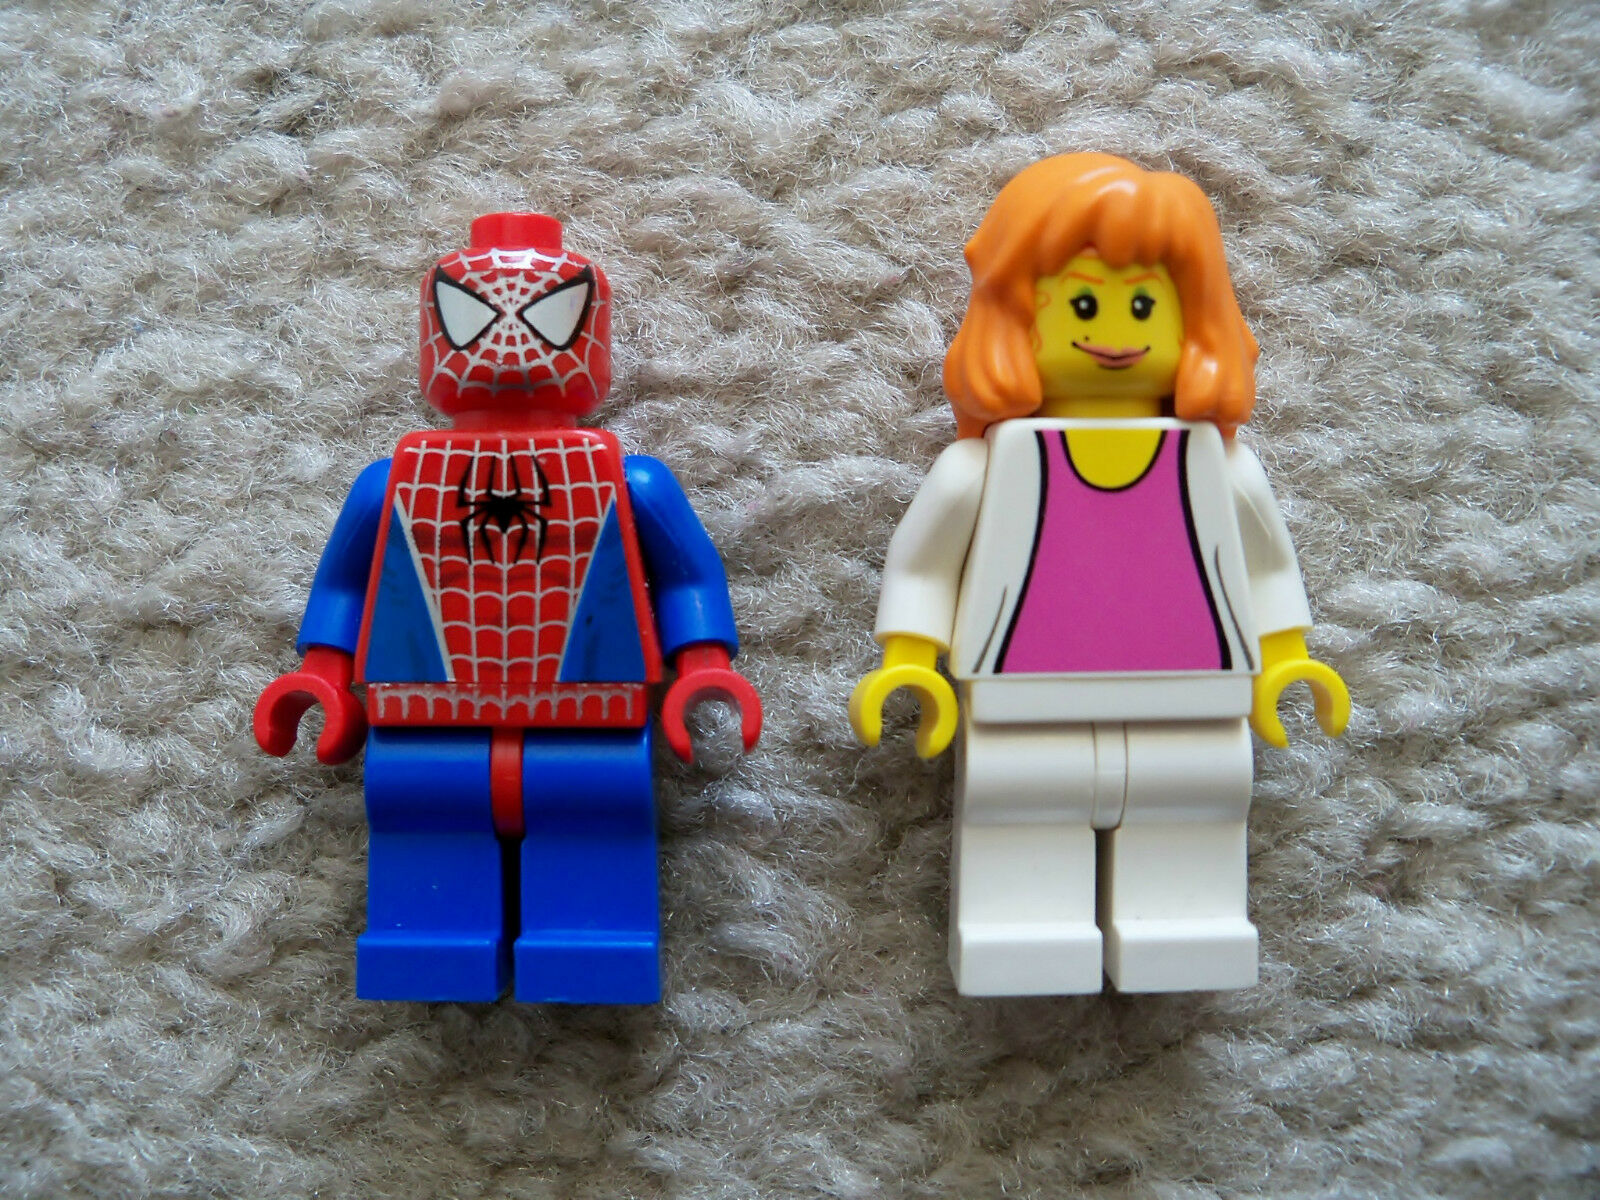 LEGO Spiderman - Rare Original Jane & Spider-Man Minifigs - 4852 - Excellent